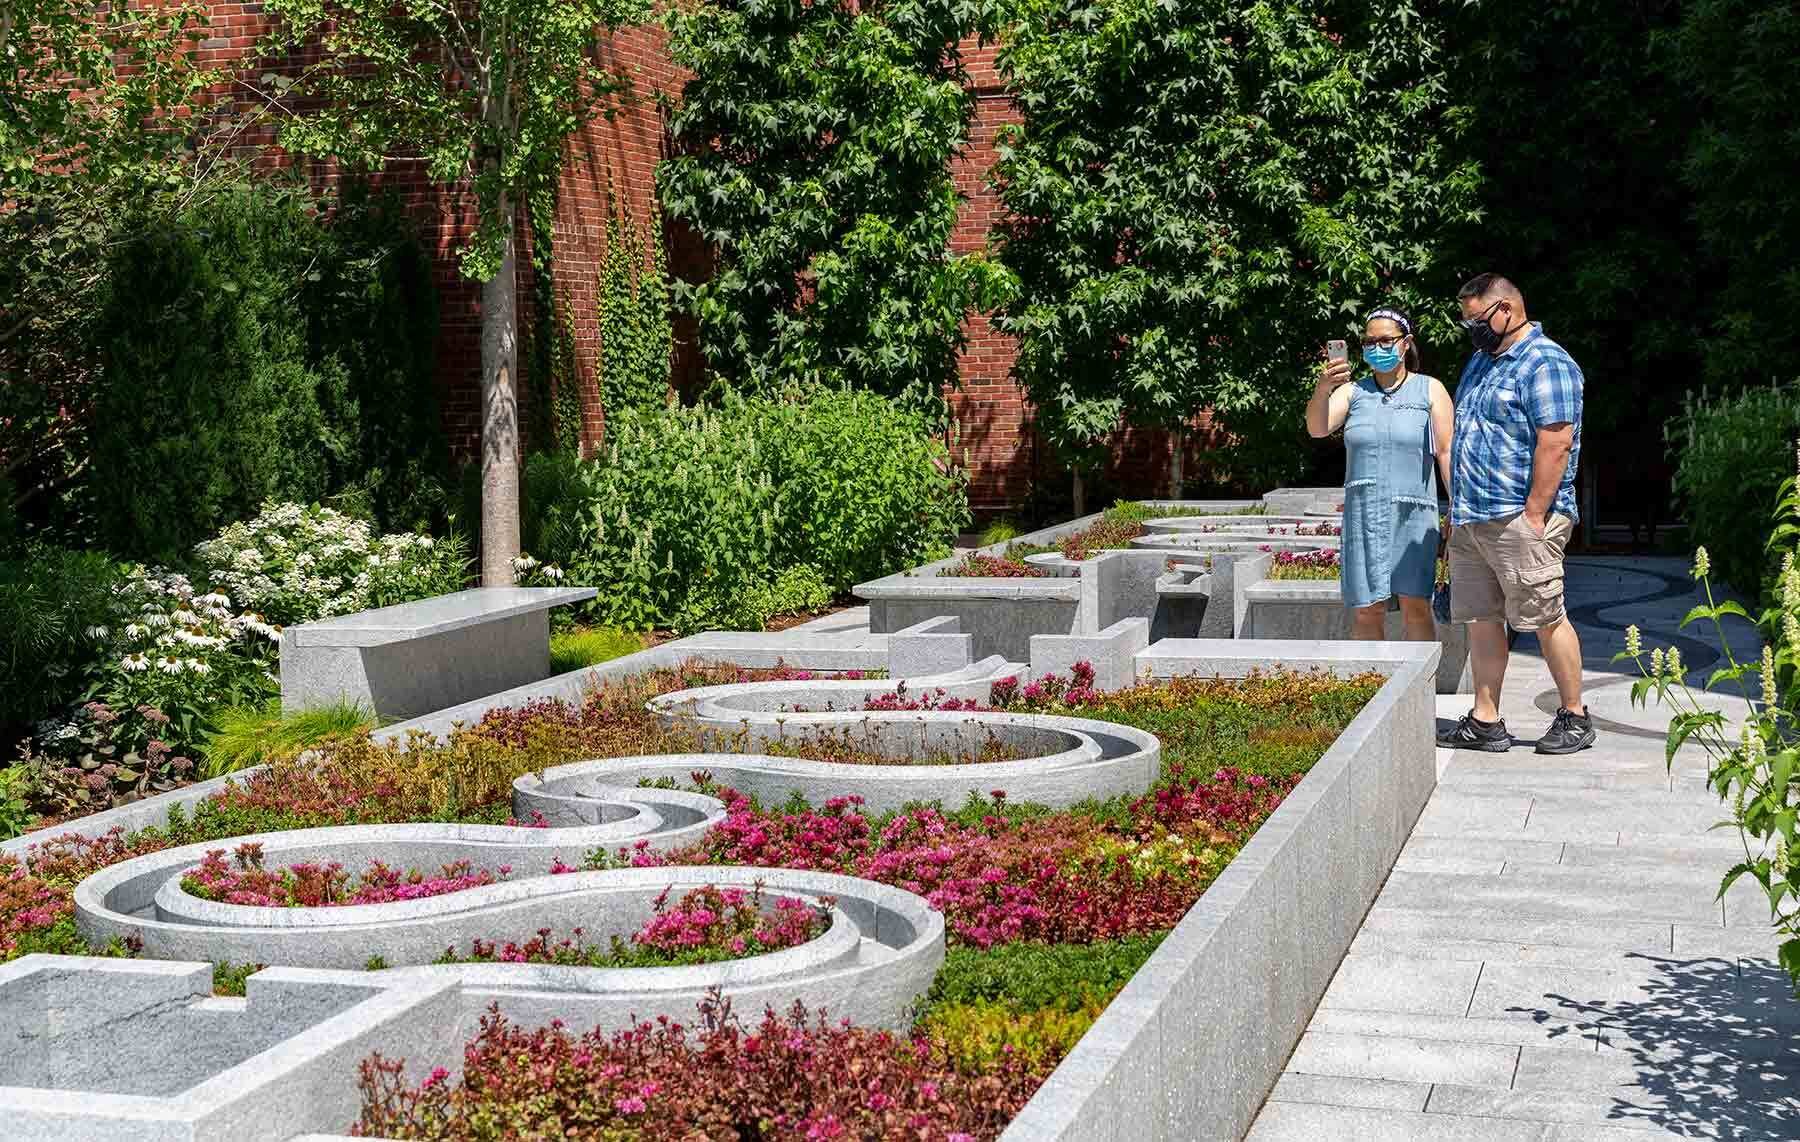 Visitors enjoy the warm weather in the new garden — the first time the space has seen a summer in New England since its opening.